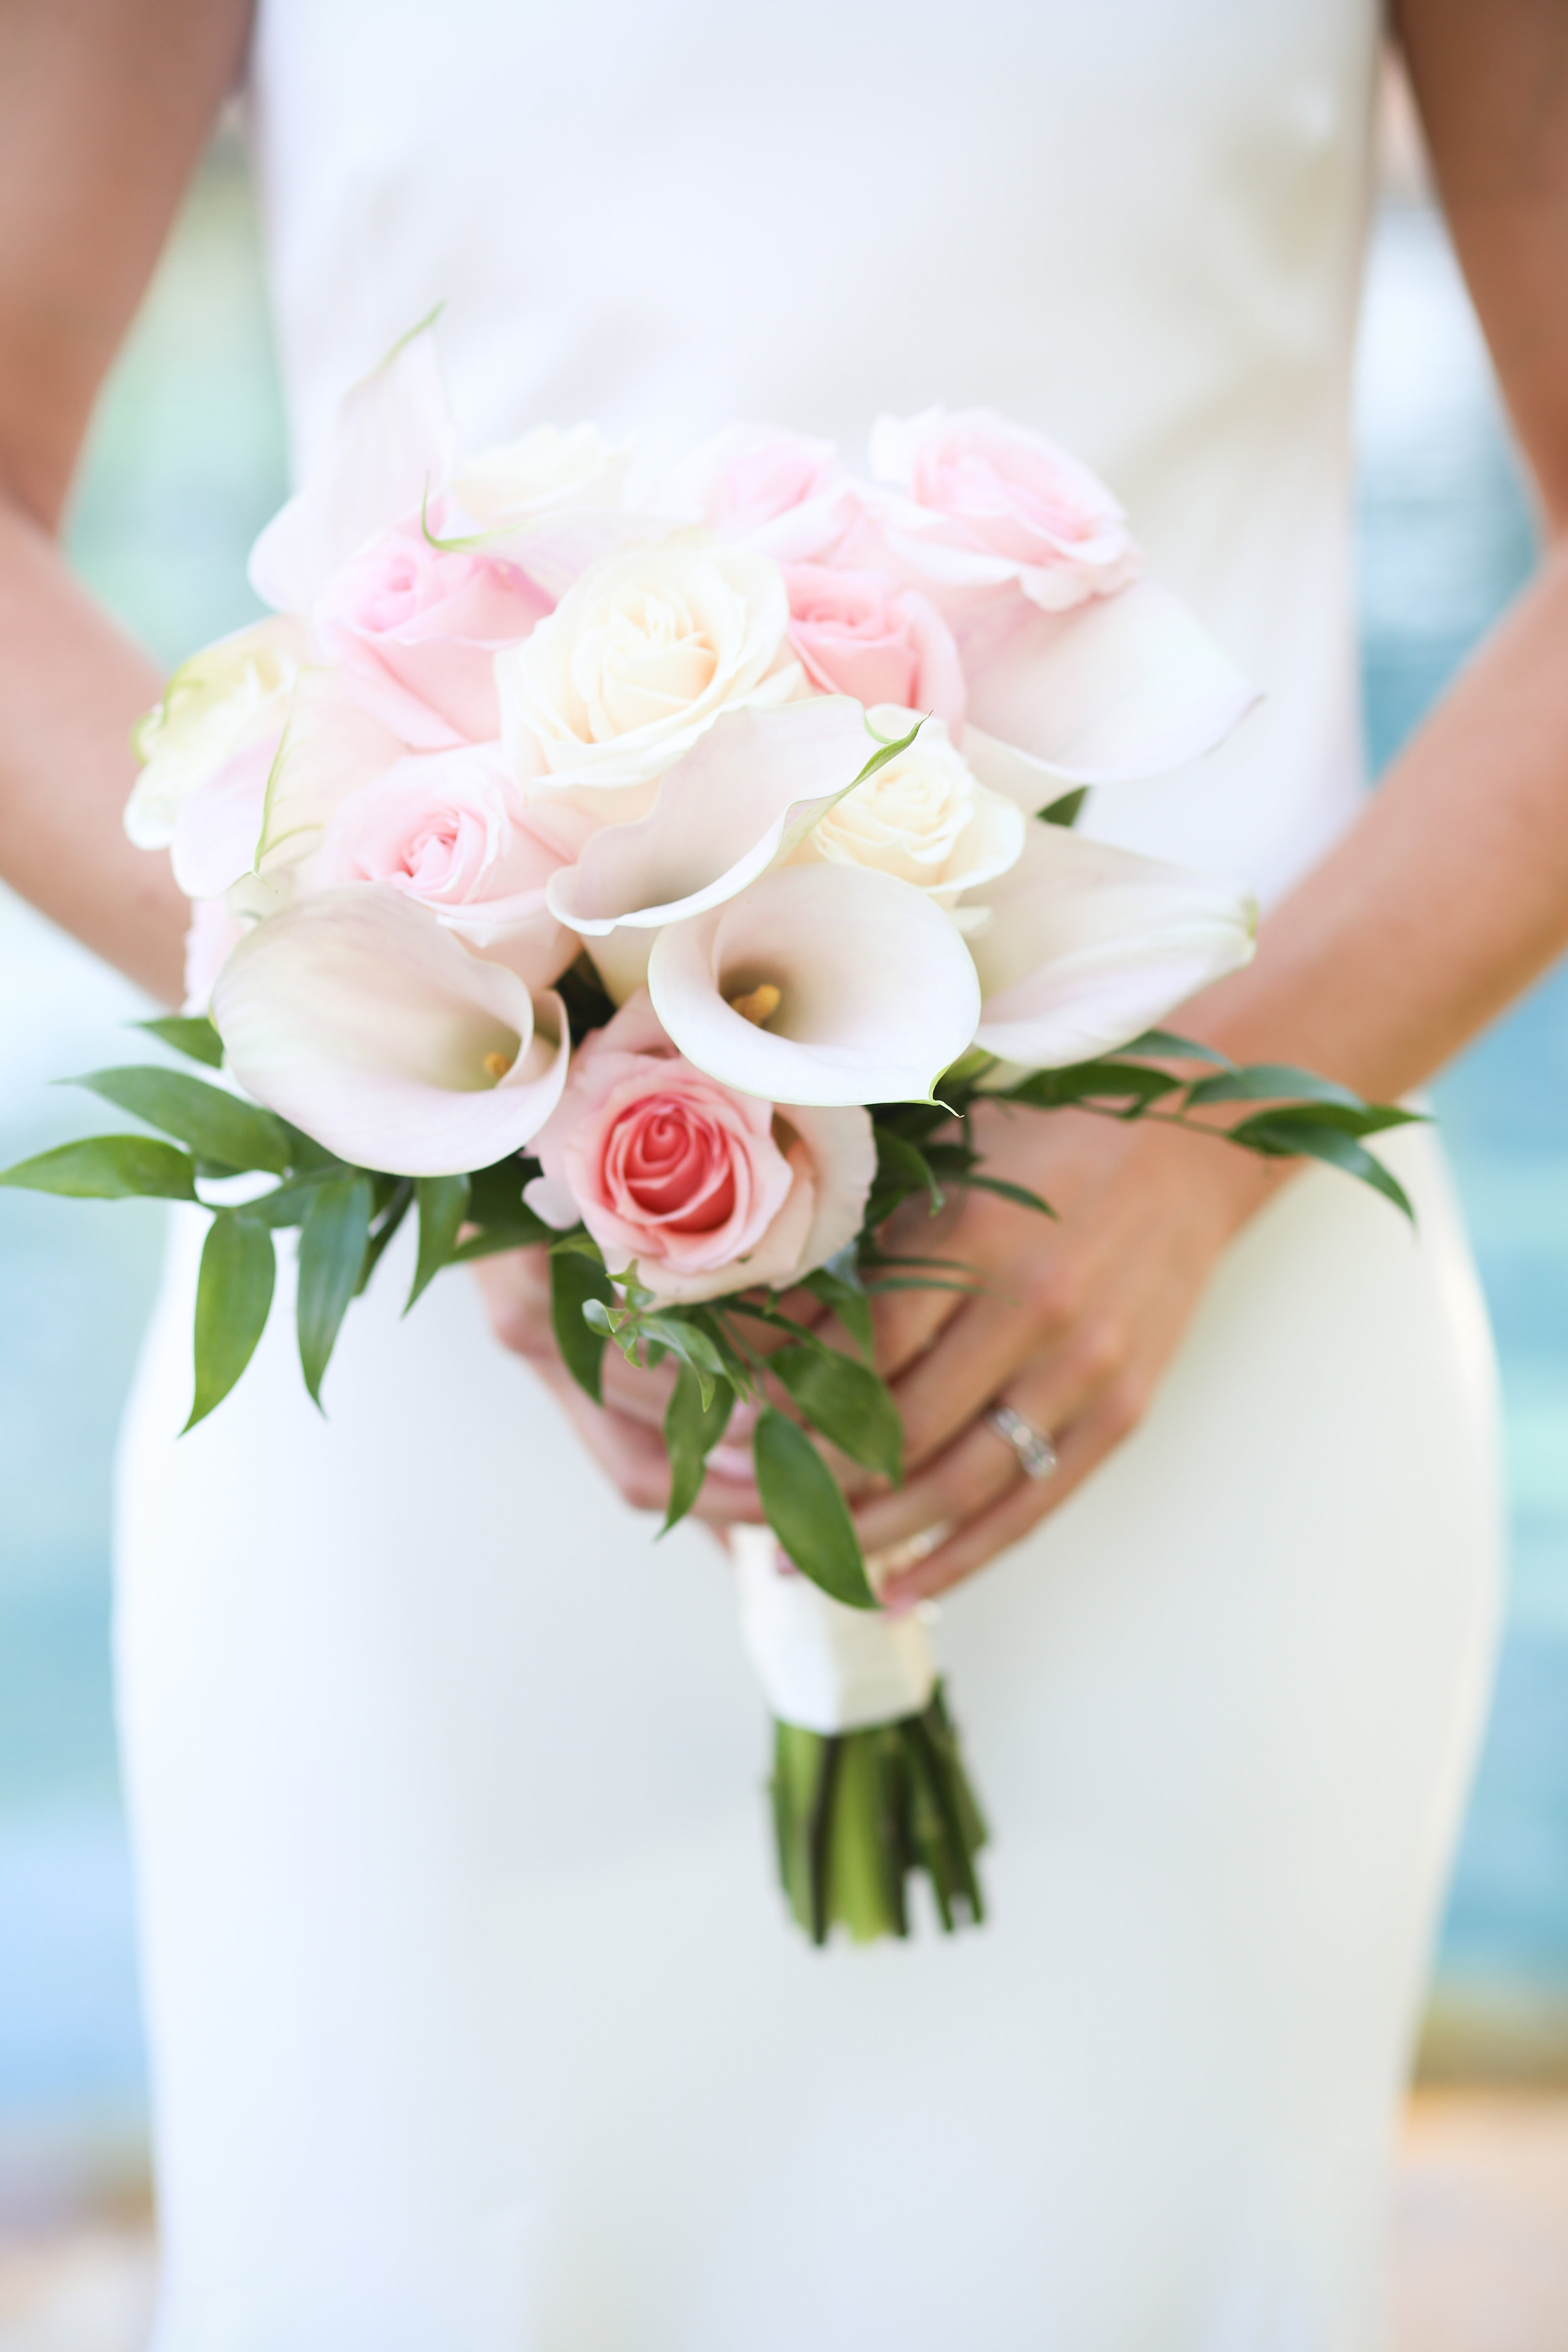 Rose and calla lily bridal bouquet.jpeg